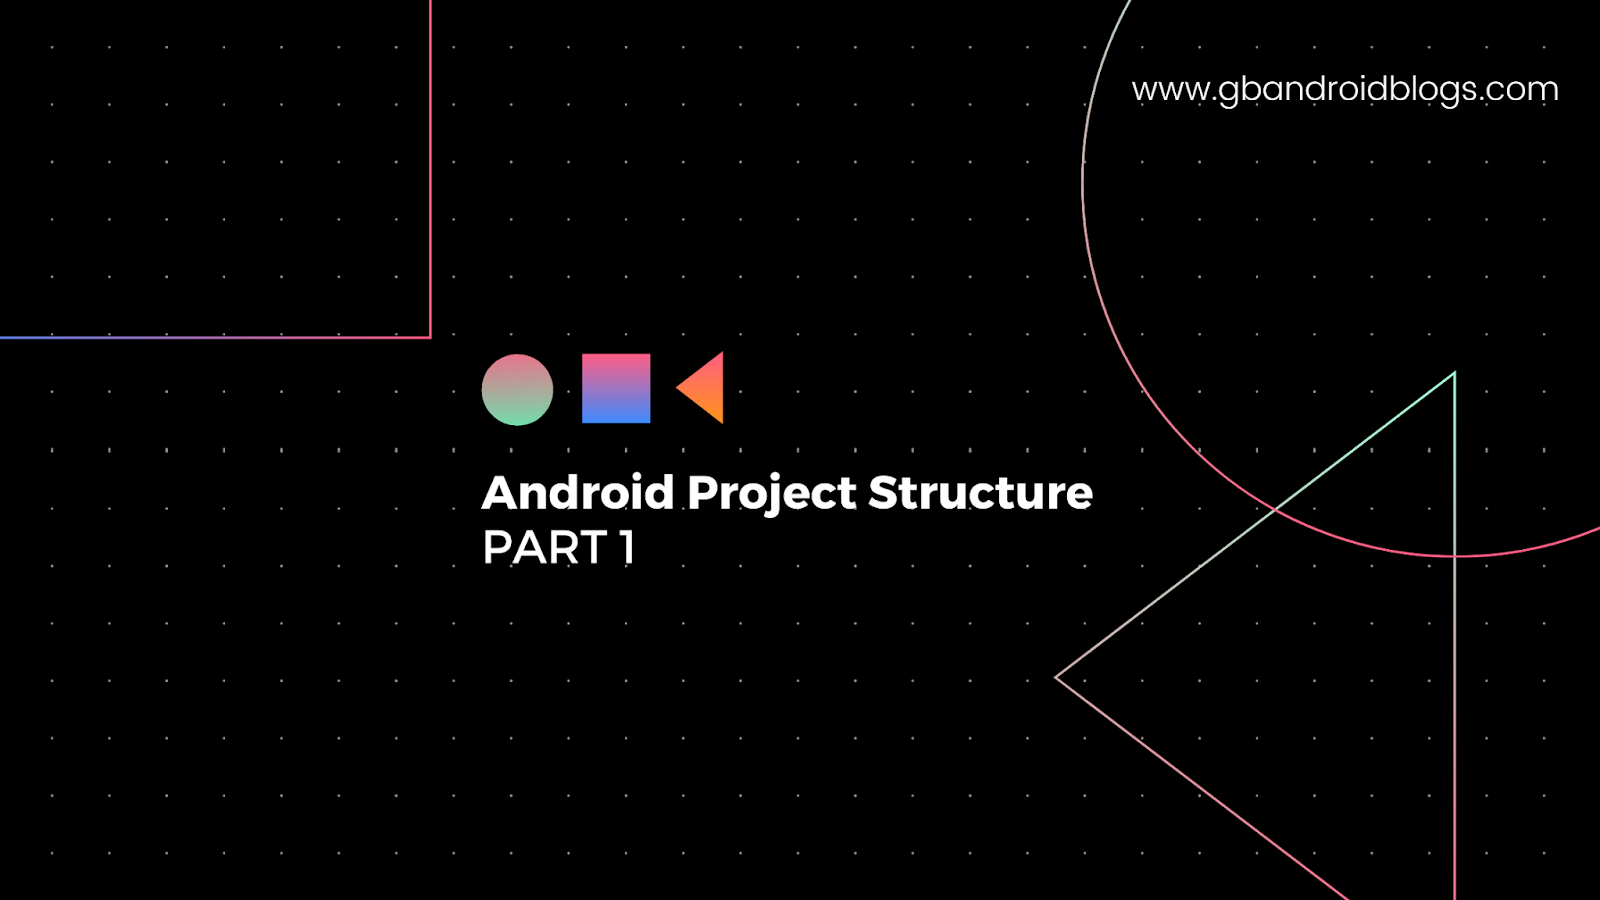 Android Project Structure Part 1